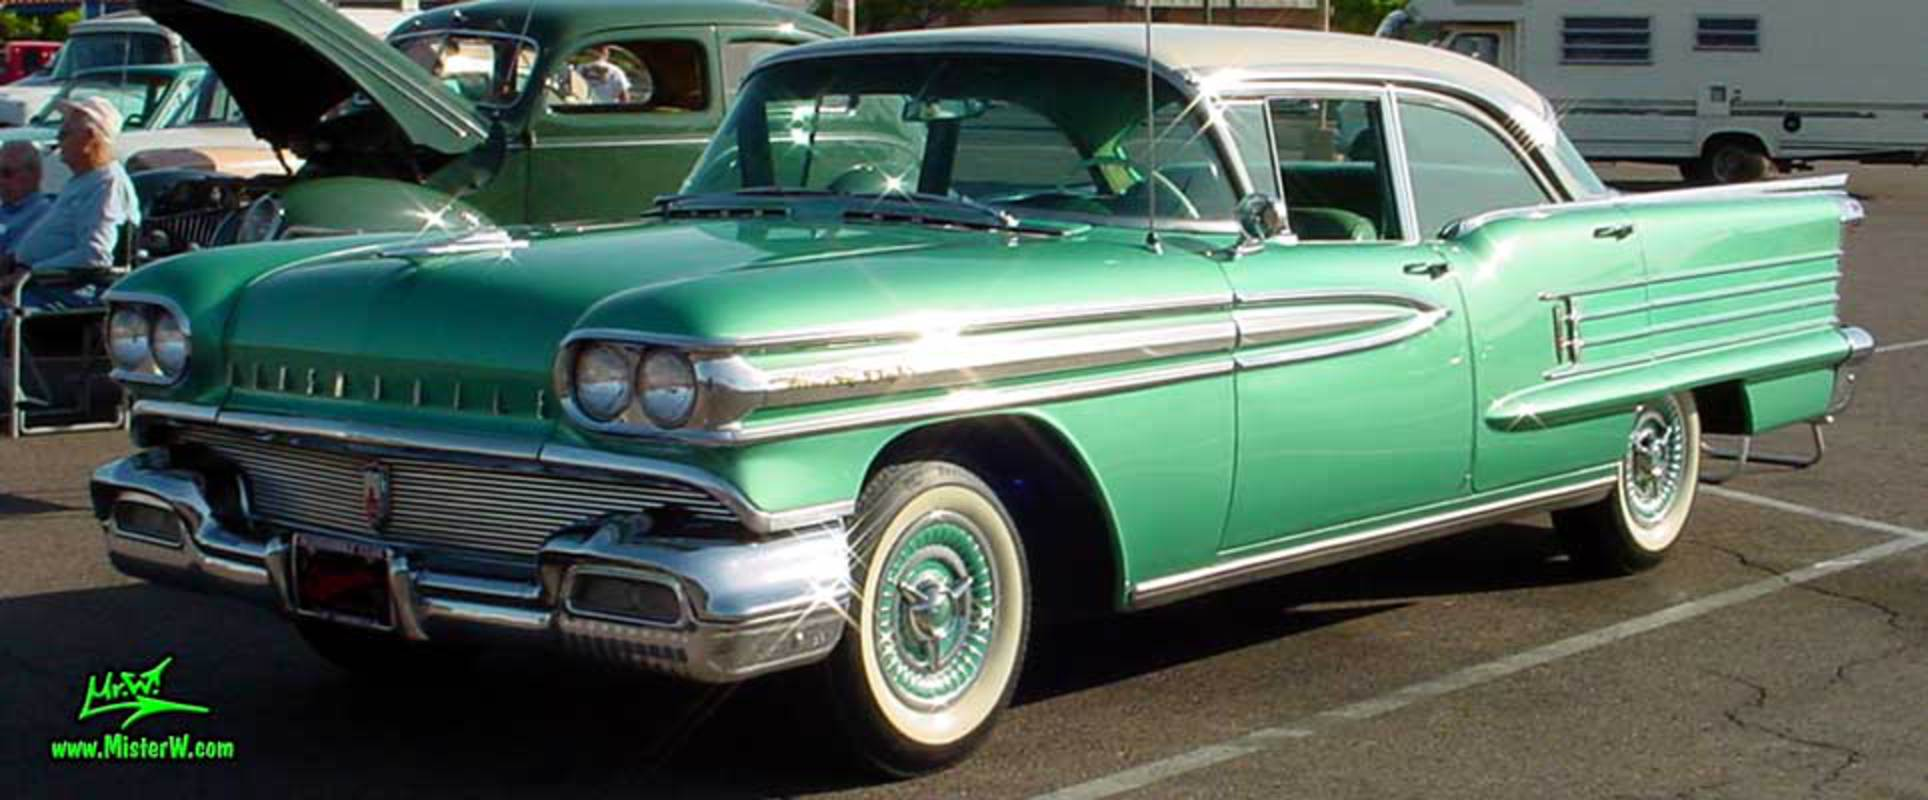 58 Olds Ninety Eight | 1958 Oldsmobile 98 Sedan | Classic Car Photo Gallery